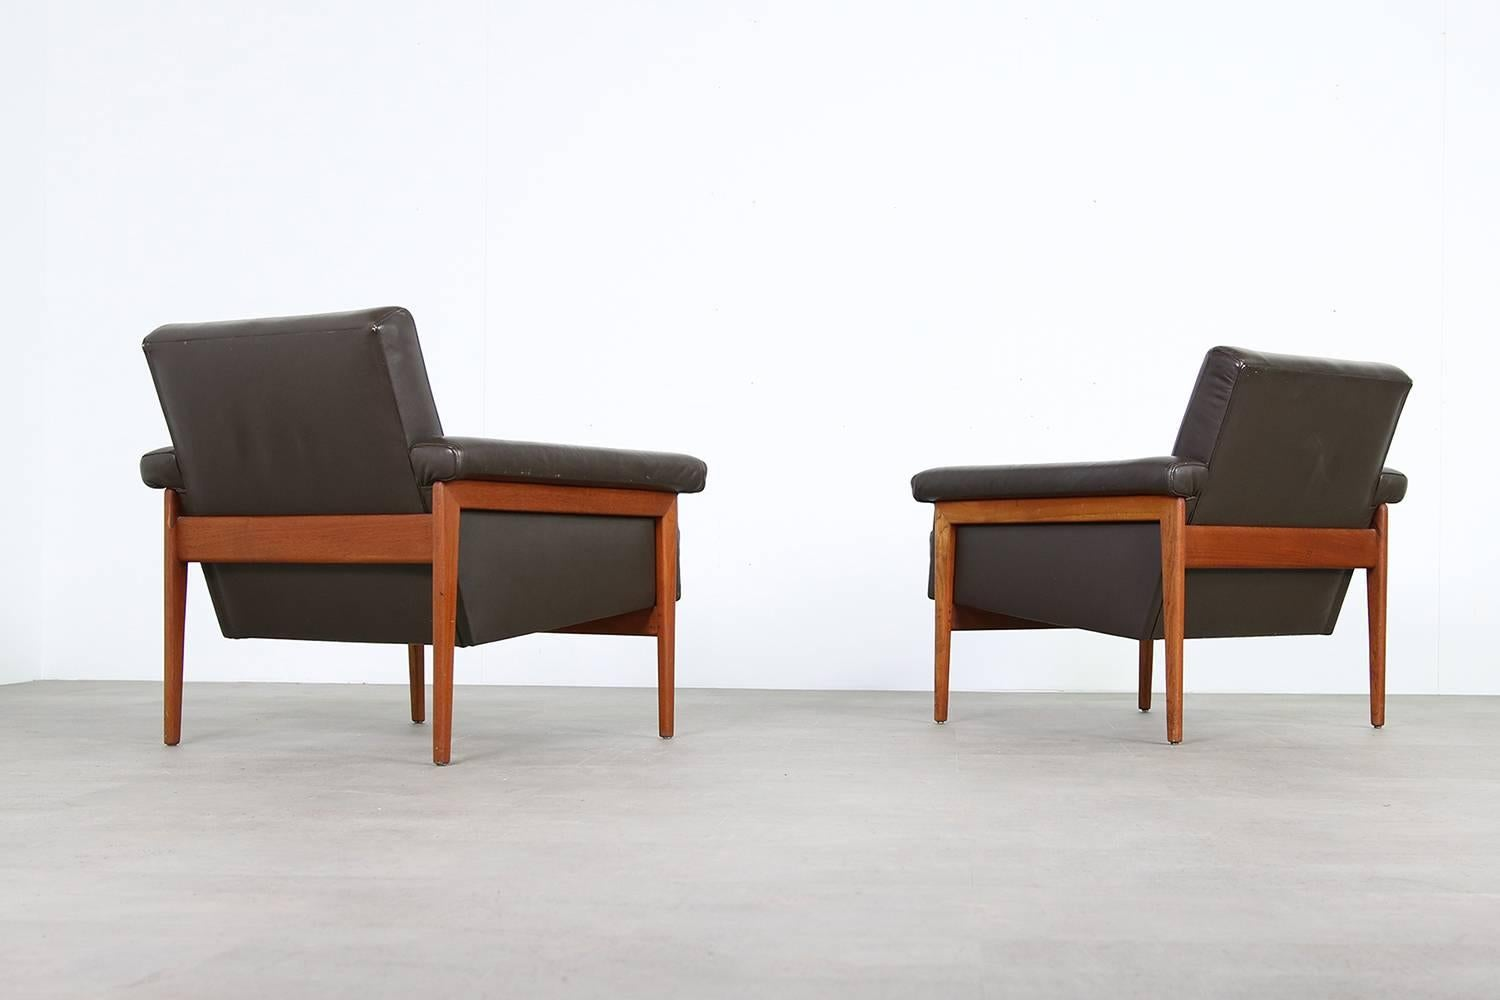 Pair Of Rare Danish 1960s Teak And Dark Brown Leather Lounge Chairs Armchairs At 1stdibs